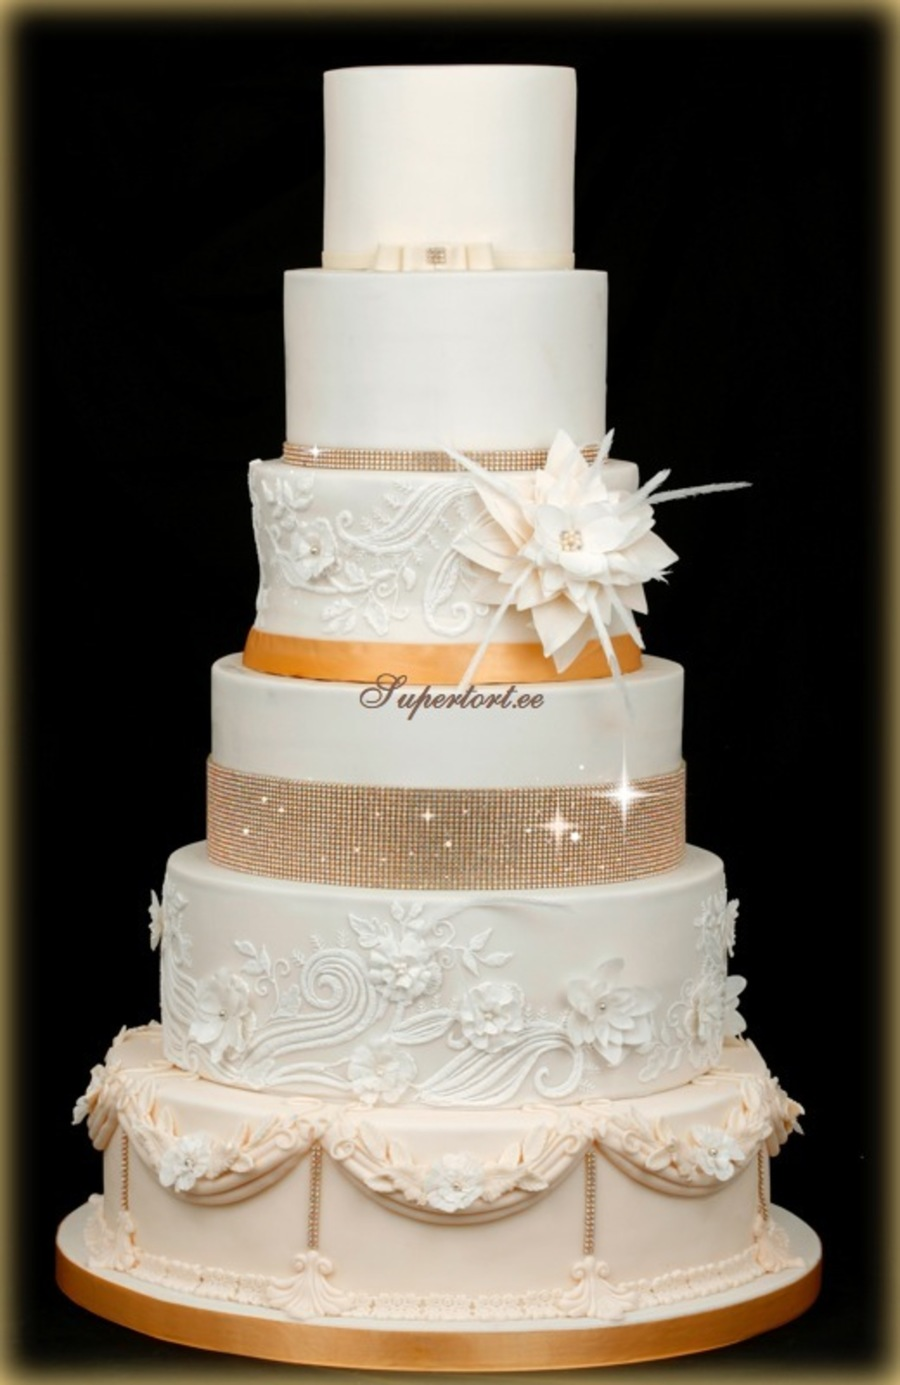 lace icing for wedding cakes glam and shine wedding cake stones are not edible flower 16685